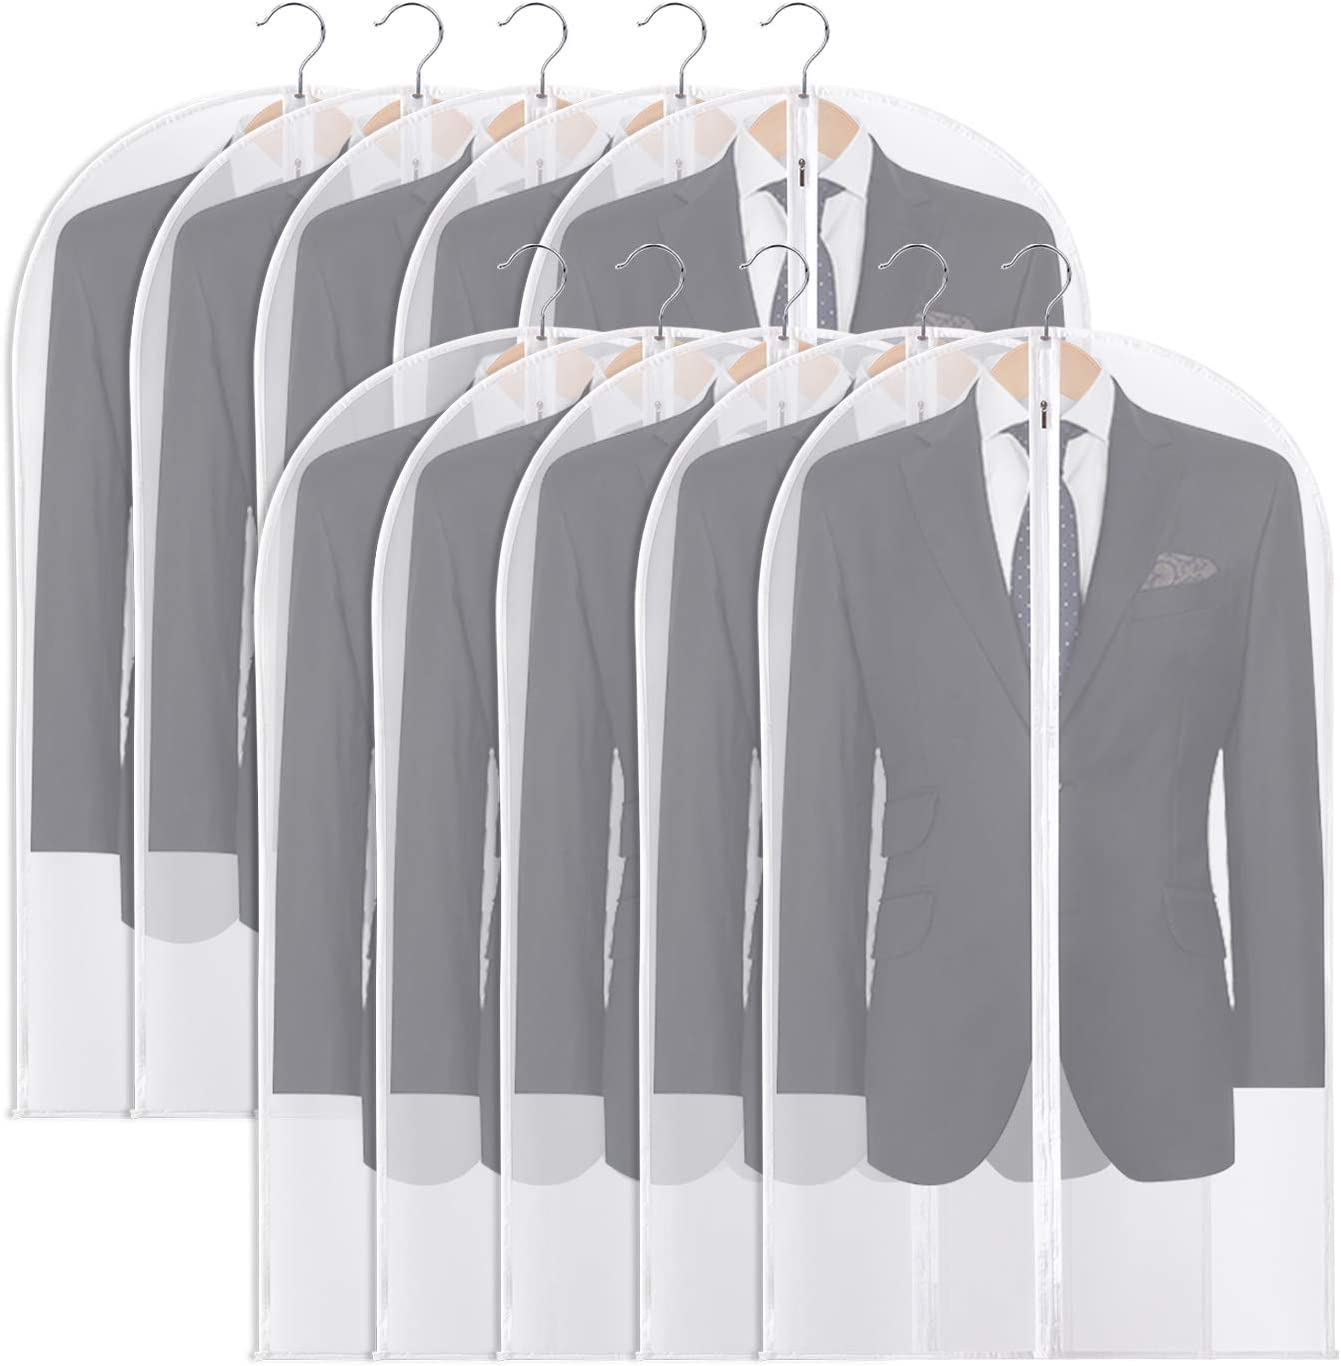 OSPUORT 10 Pack Hanging Garment Bags Suit Bag for Storage with Durable Zipper, Washable Lightweight Garment Covers for Closet Storage